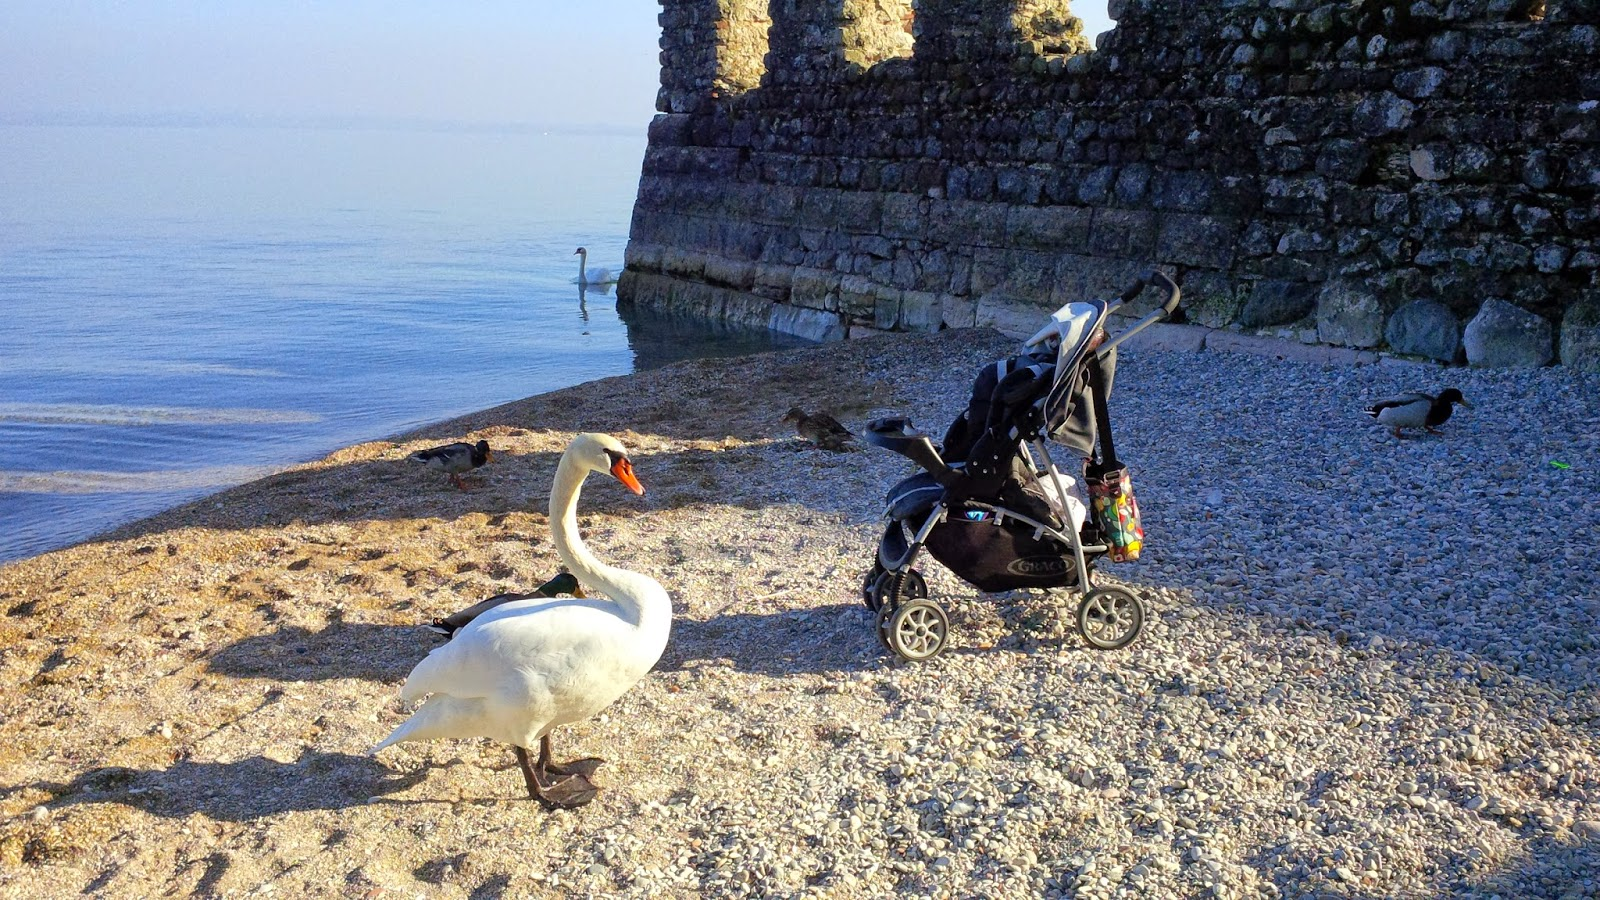 A swan courts our laden with stuff buggy on a Lake Garda beach